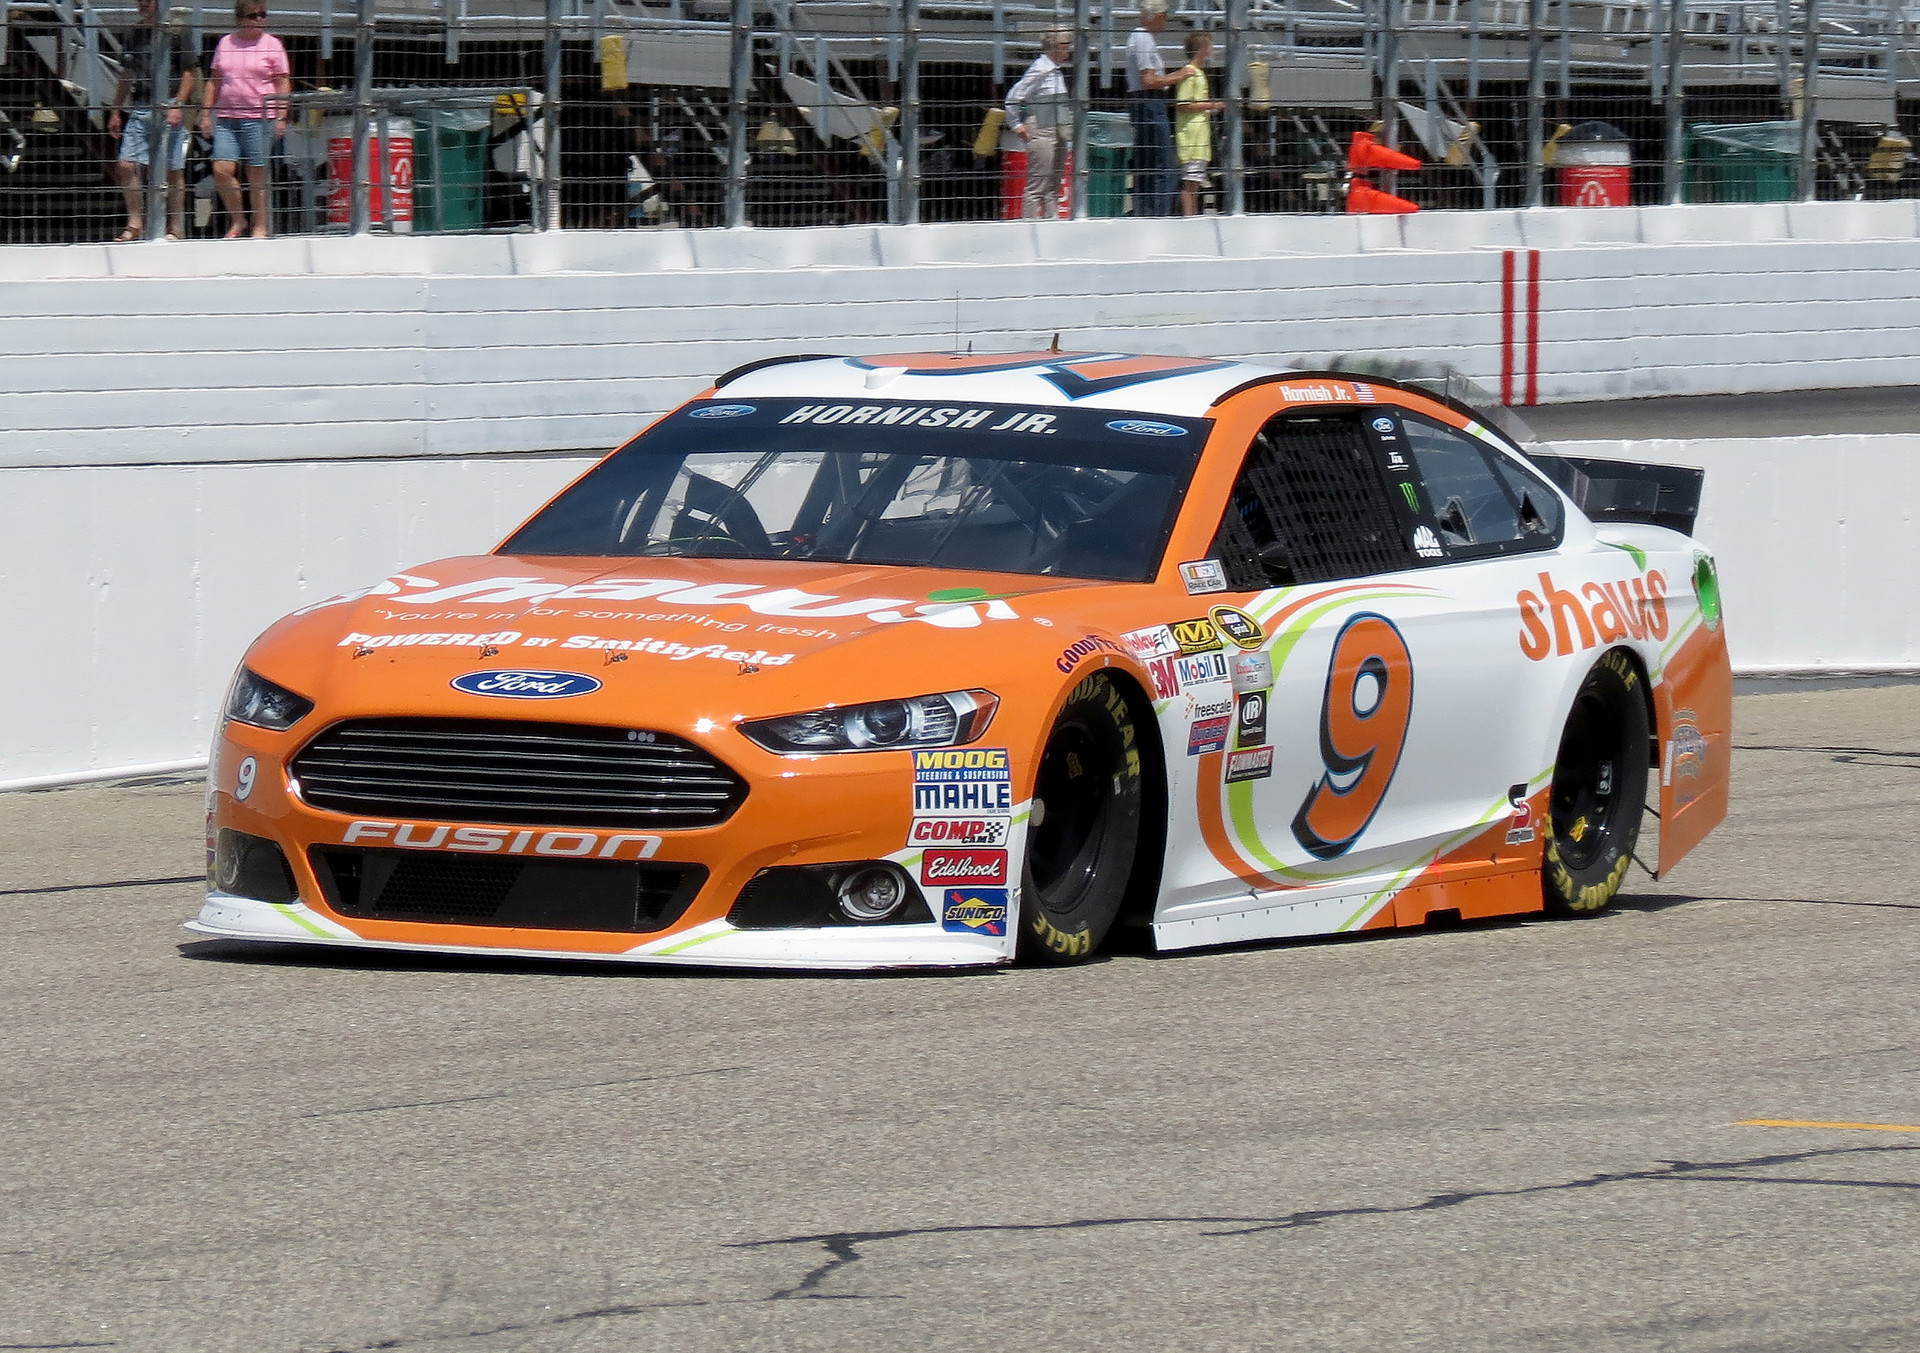 The #9 Shaw's Supermarkets Ford Fusion on track during a practice session at New Hampshire Motor Speedway on July 17th, 2015.